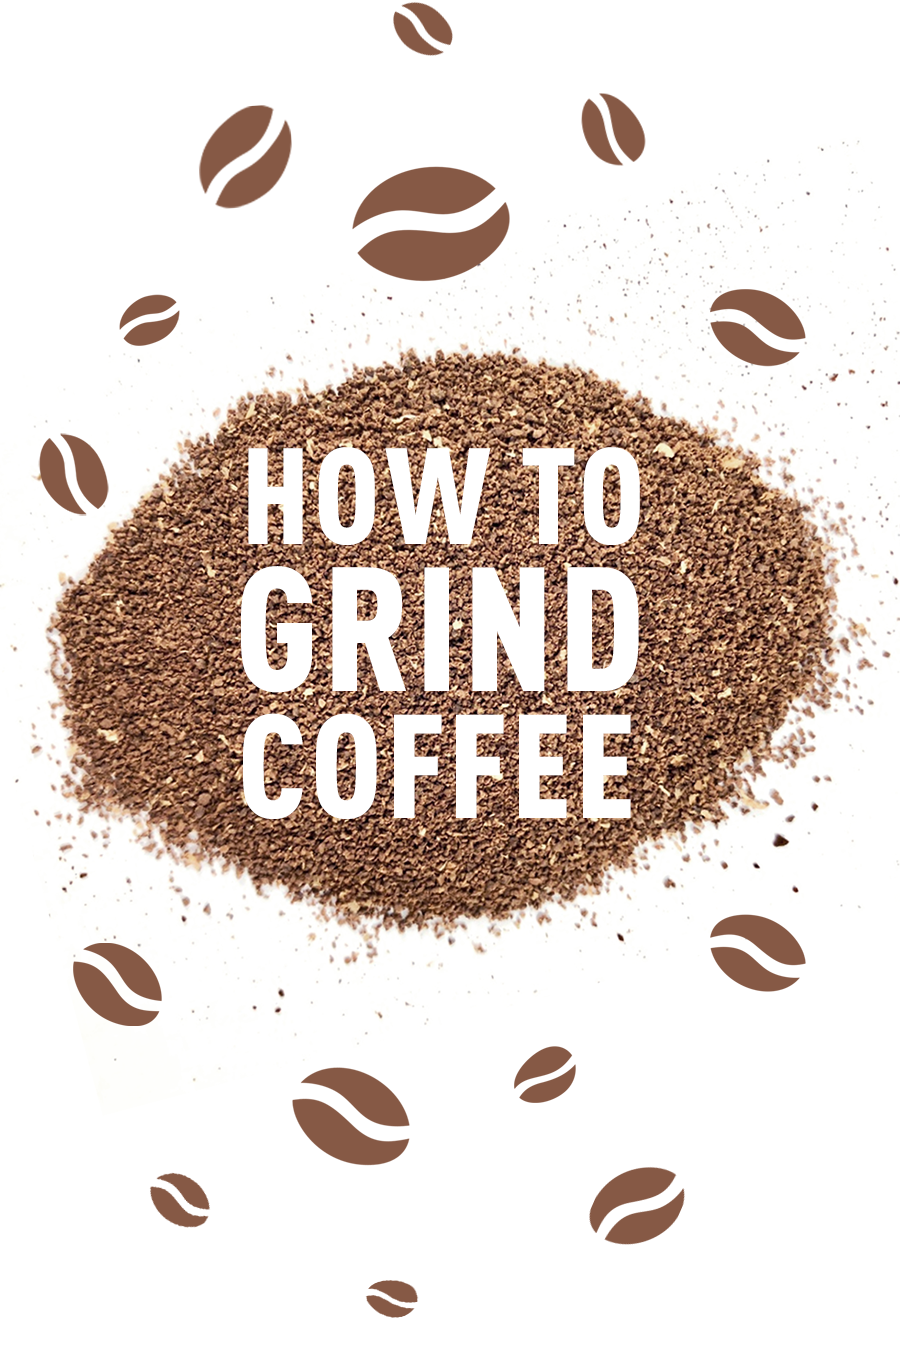 The Ultimate Coffee Grind Guide How To Grind Coffee Beans The Best Grinders How To Use Them Grinding Coffee Beans Gourmet Coffee Beans Coffee Bean Grinder